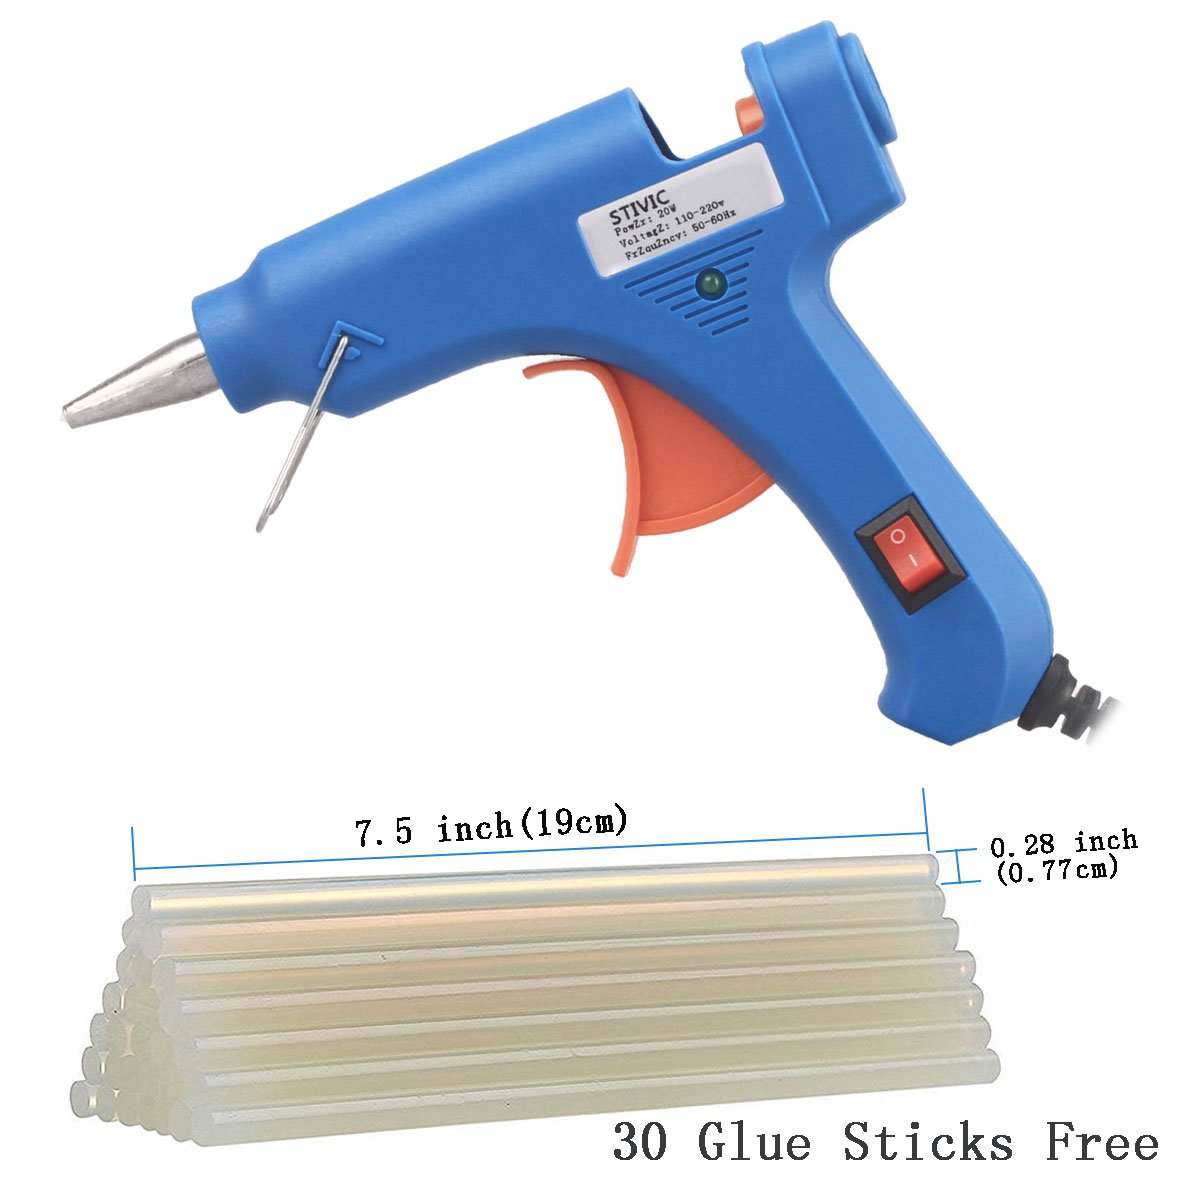 STIVIC 20W Hot Melt Glue Gun with 30pcs Glue Sticks For DIY Home Repair,Blue Yisugou JQ01